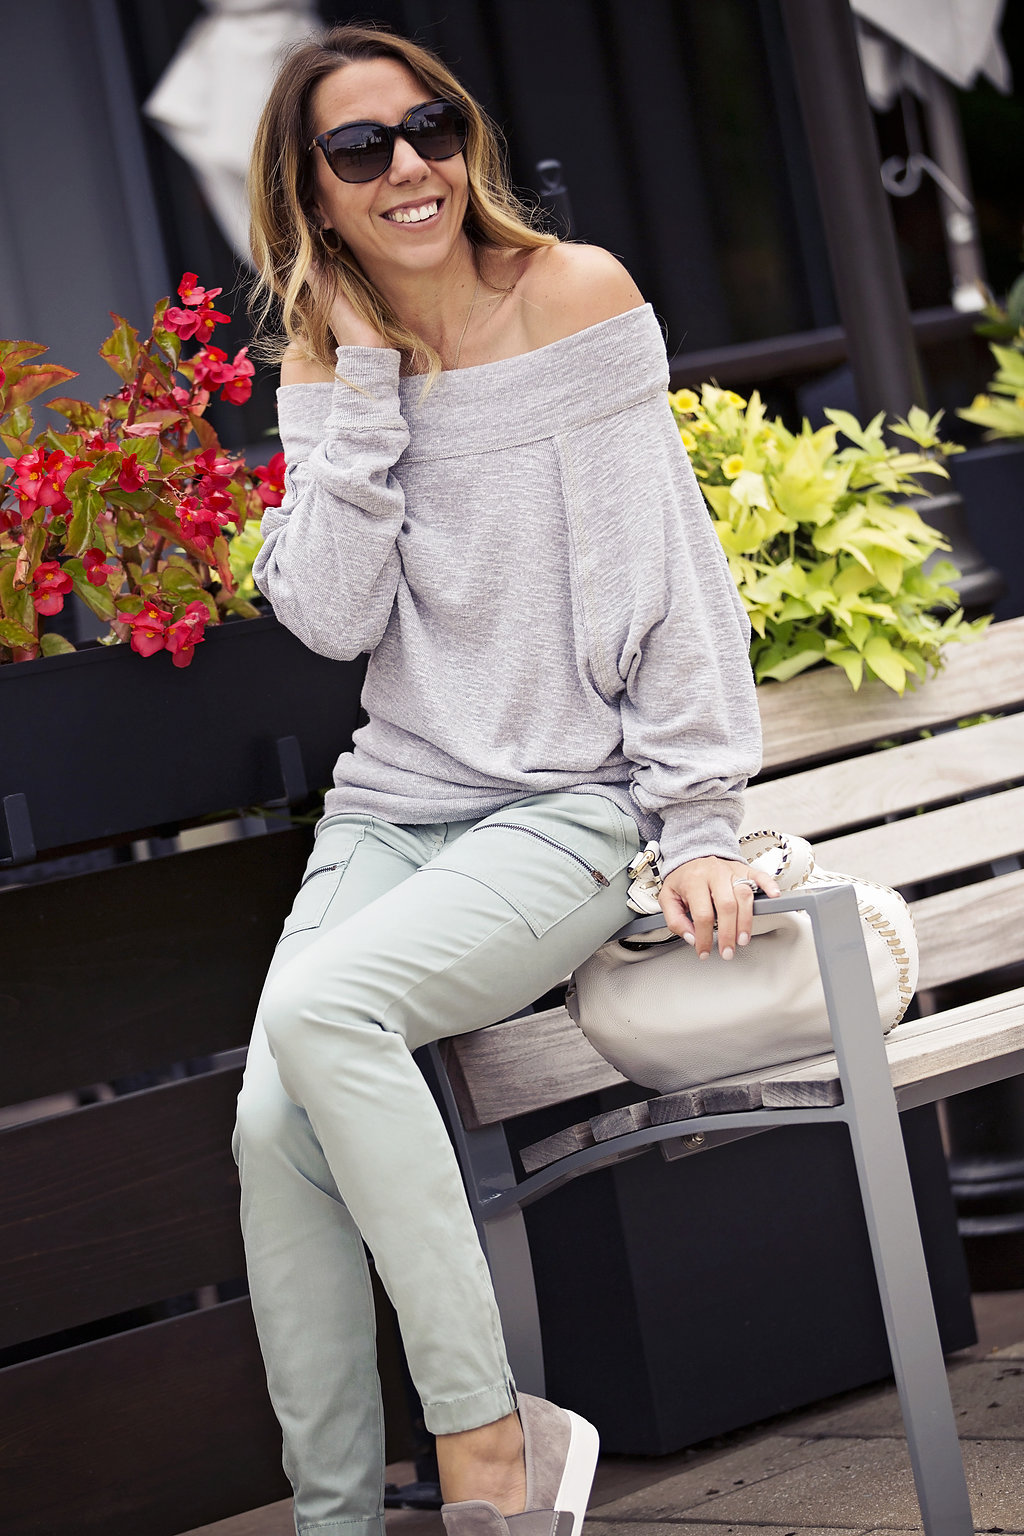 The Motherchic wearing skinny utility pant and off the shoulder sweater